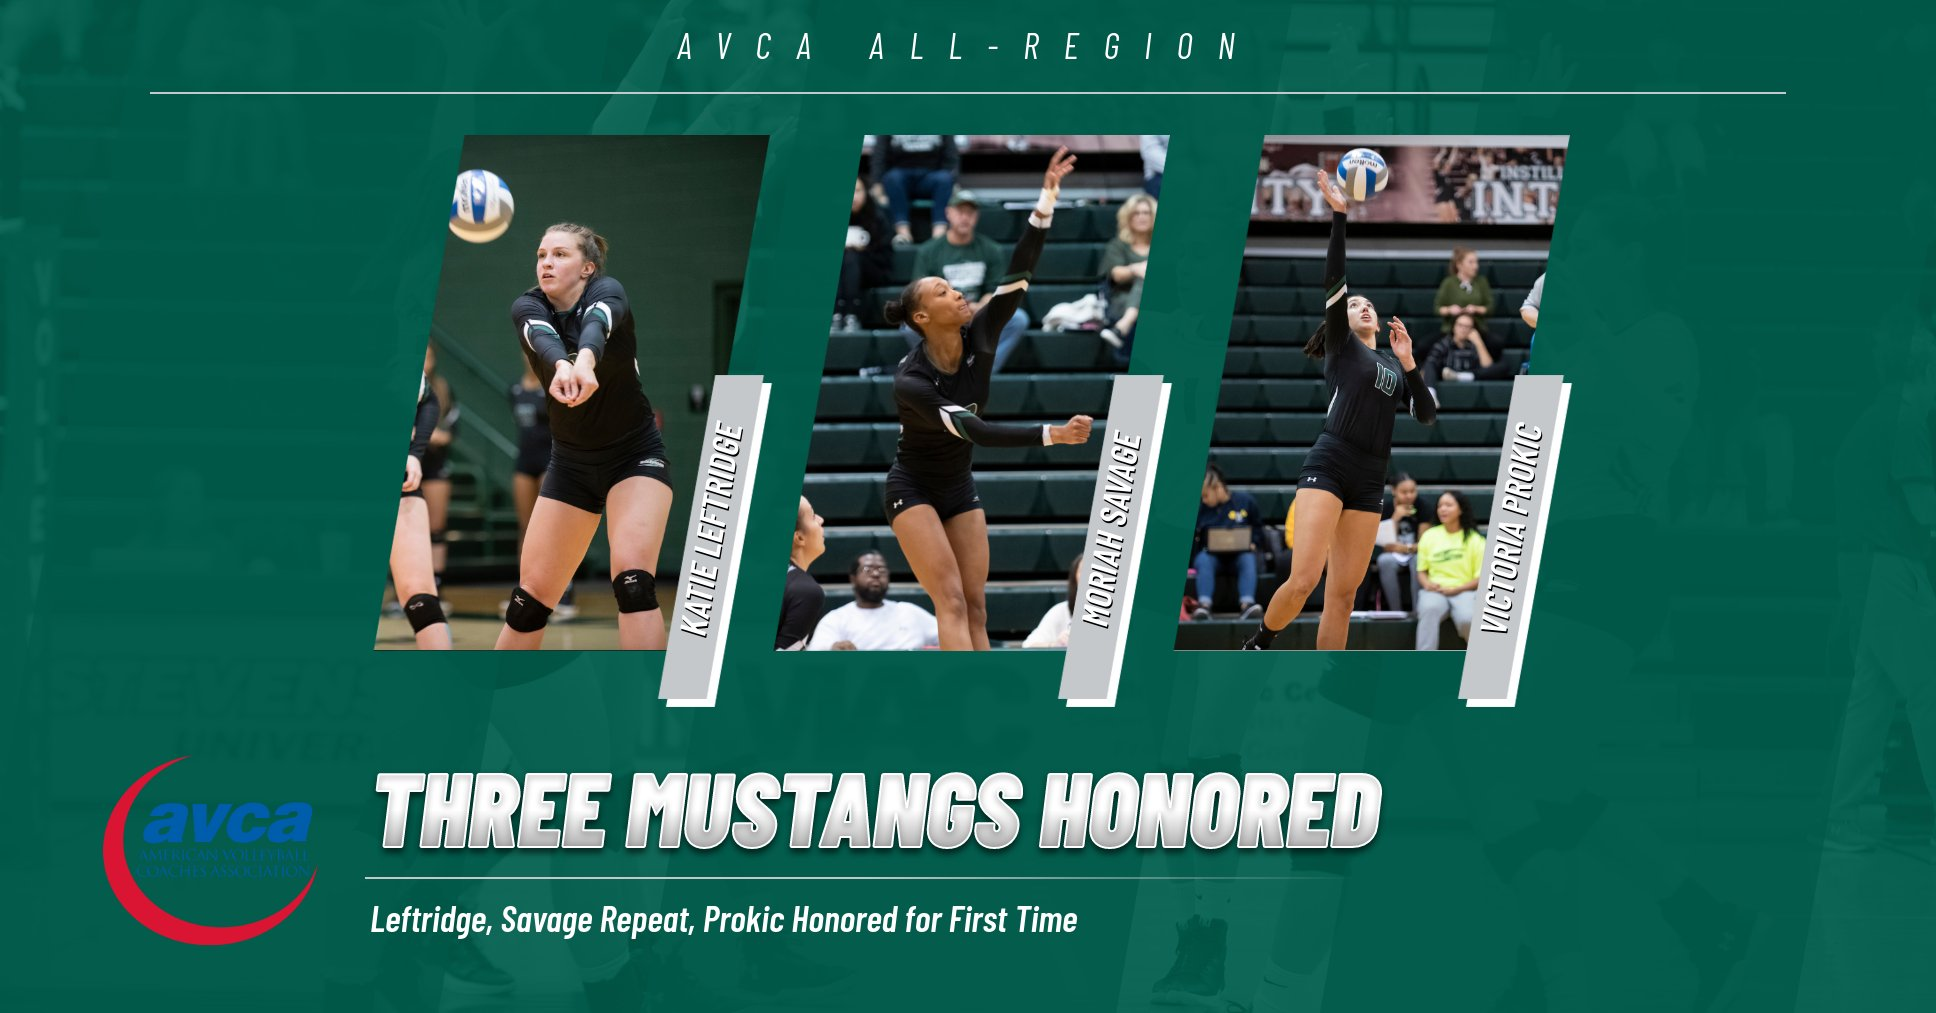 Three From Women's Volleyball Garner AVCA Accolades